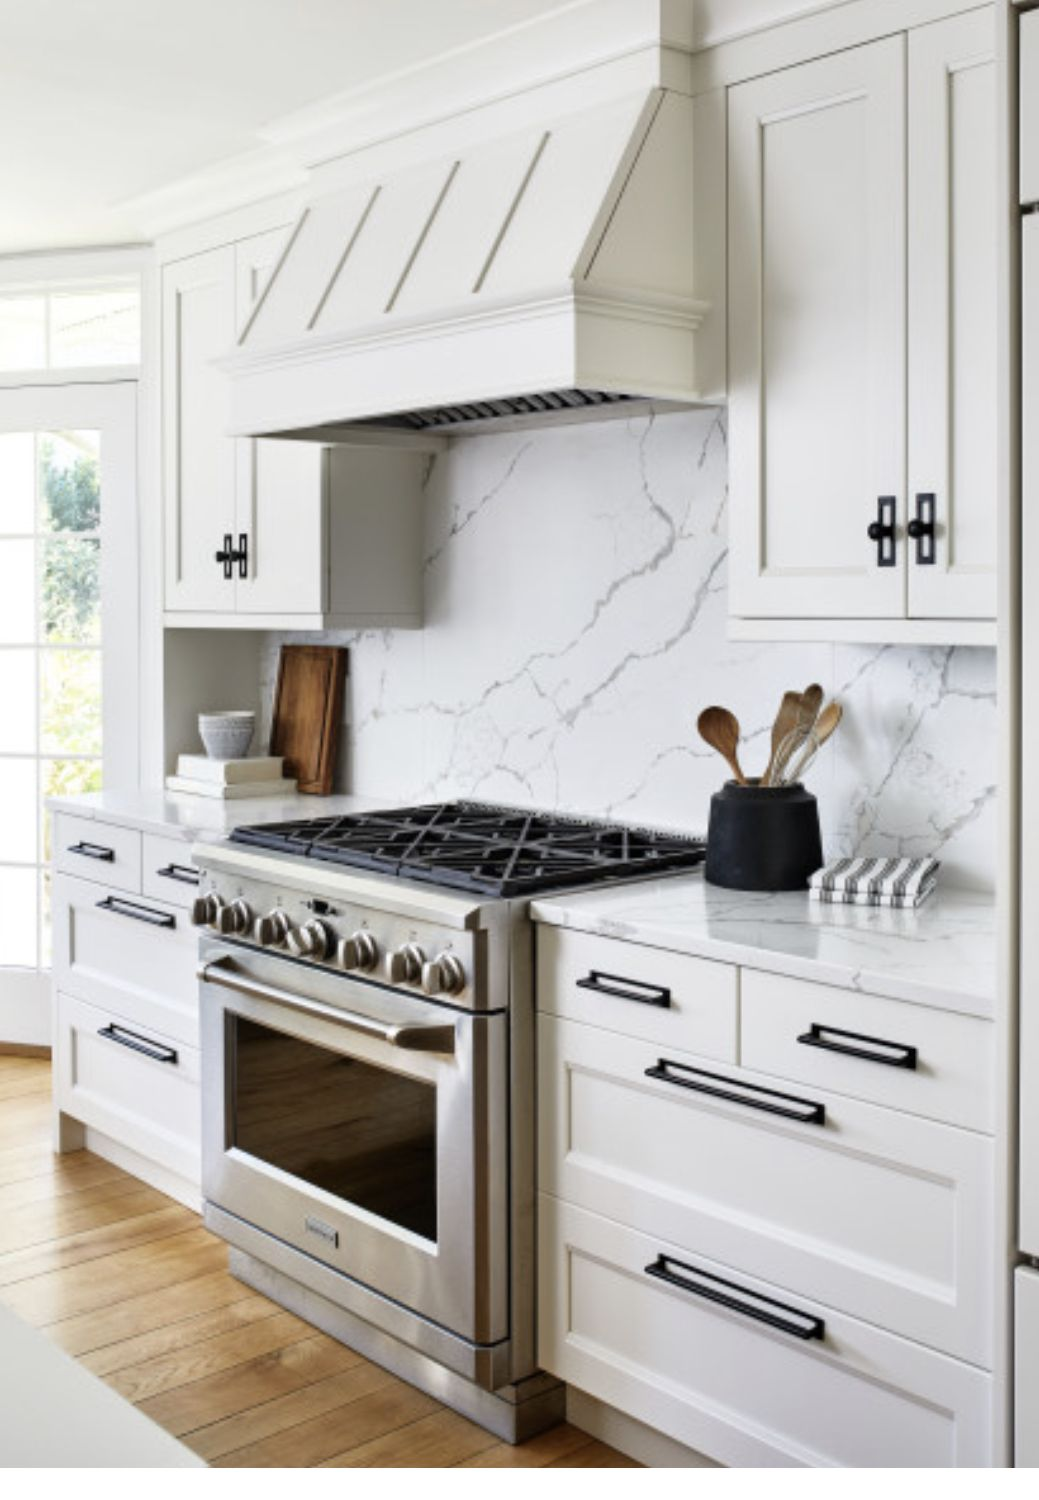 Pin By Tracy Matlock On Dream Kitchen In 2020 Dream Kitchen Kitchen Cabinets Kitchen